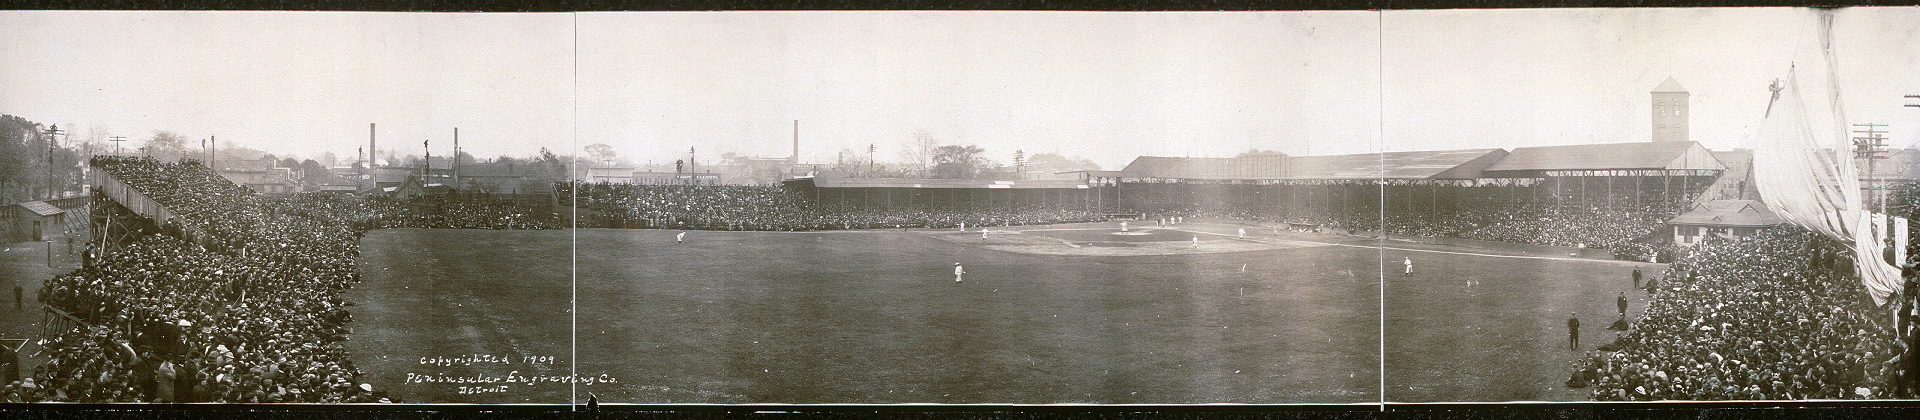 Bennett Park at Michigan & Trumbull, October 11, 1909